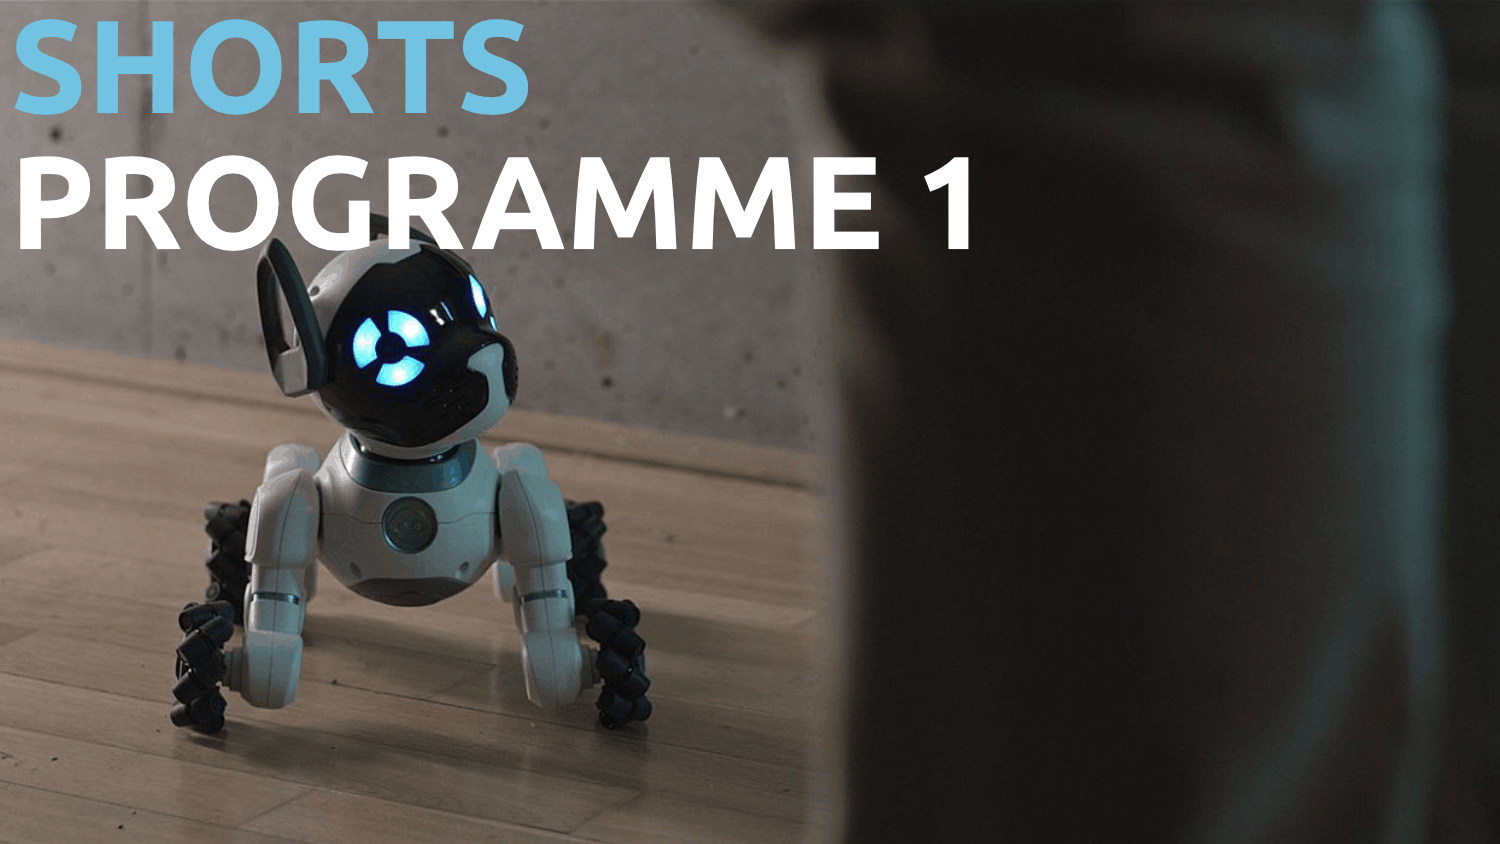 Sydney Lift-Off Film Festival 2018 - Shorts programme 1